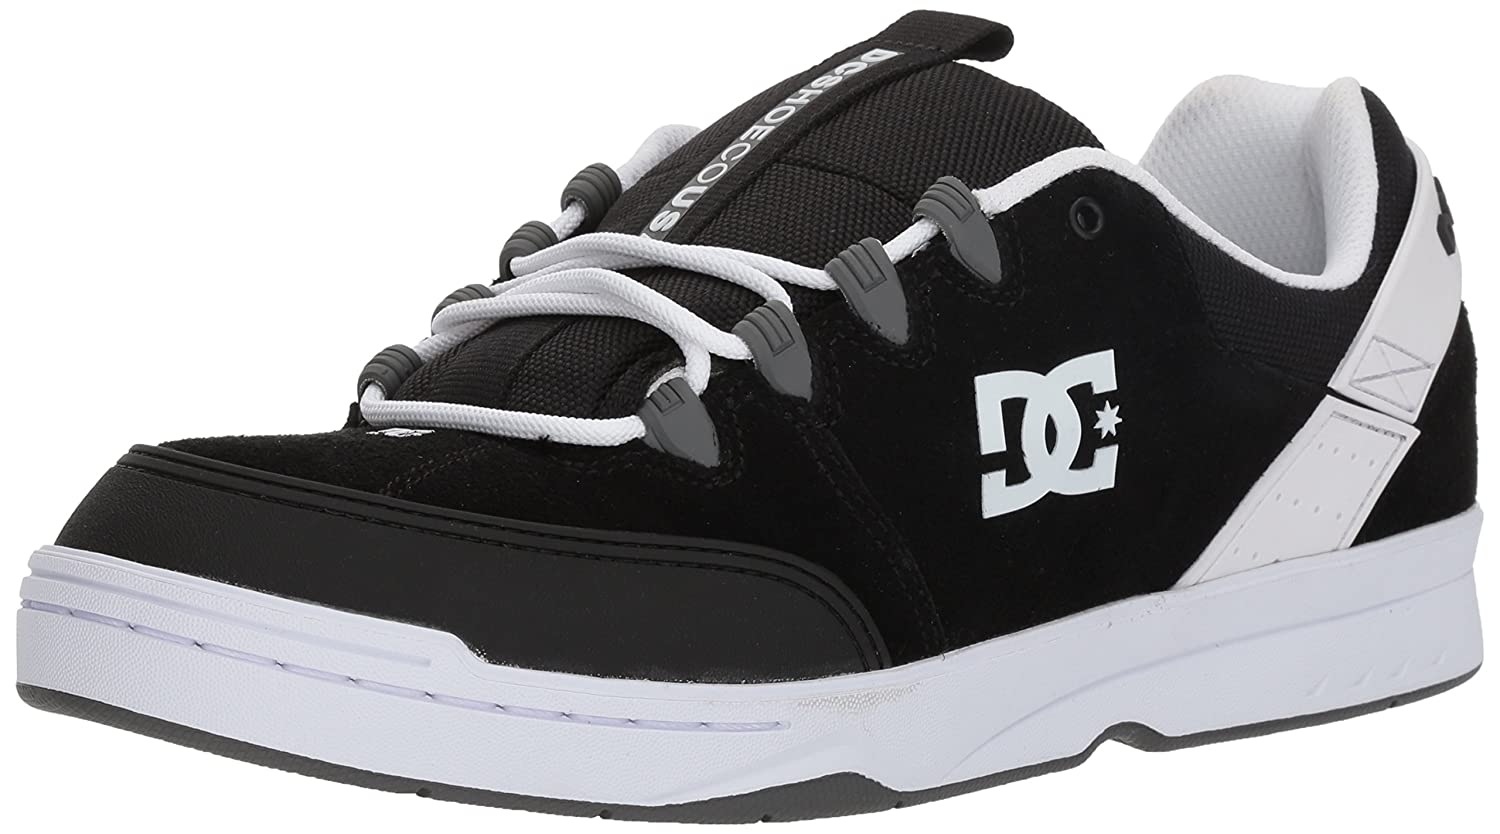 DC Men's Syntax Skateboarding Shoe 10 D D US|Black/Grey